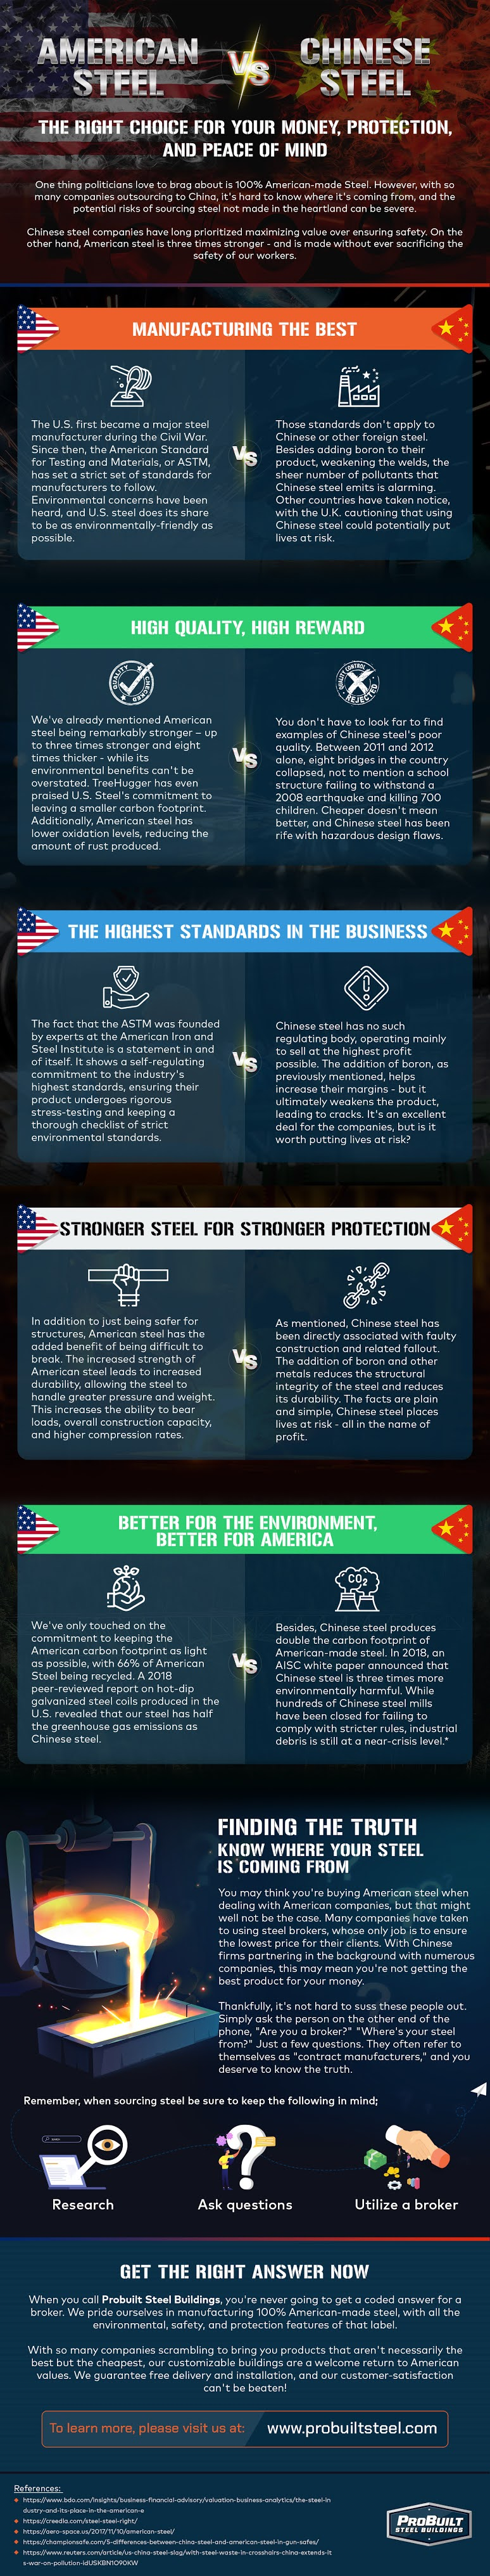 American vs. Chinese Steel: The Best Price is Not Always the Best Option #infographic #Steel #infographics